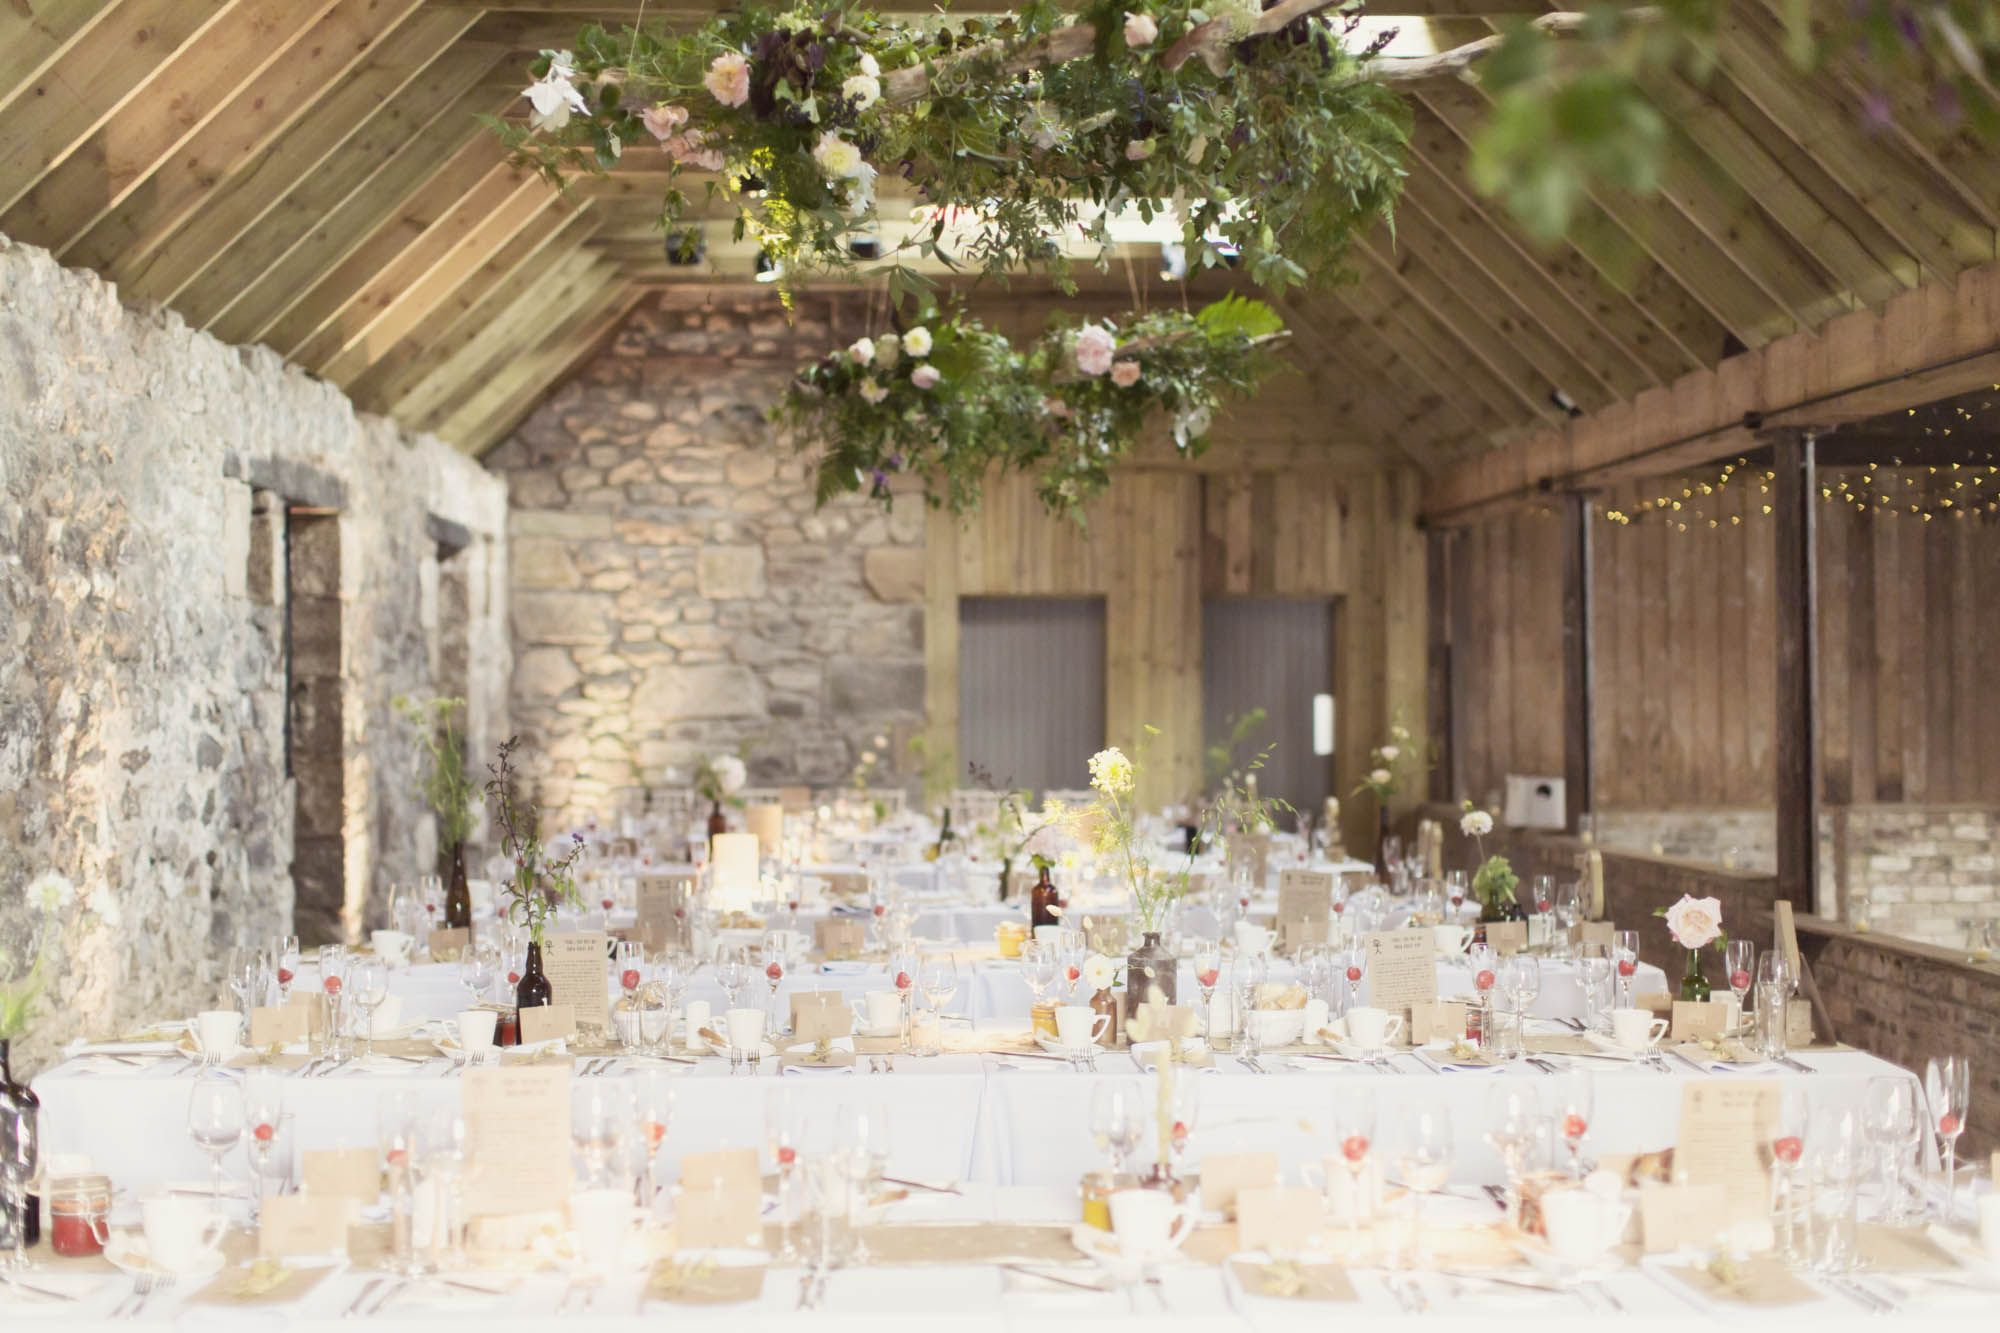 farm wedding venues minneapolis%0A The Byre at Inchyra Perthshire event wedding barn home